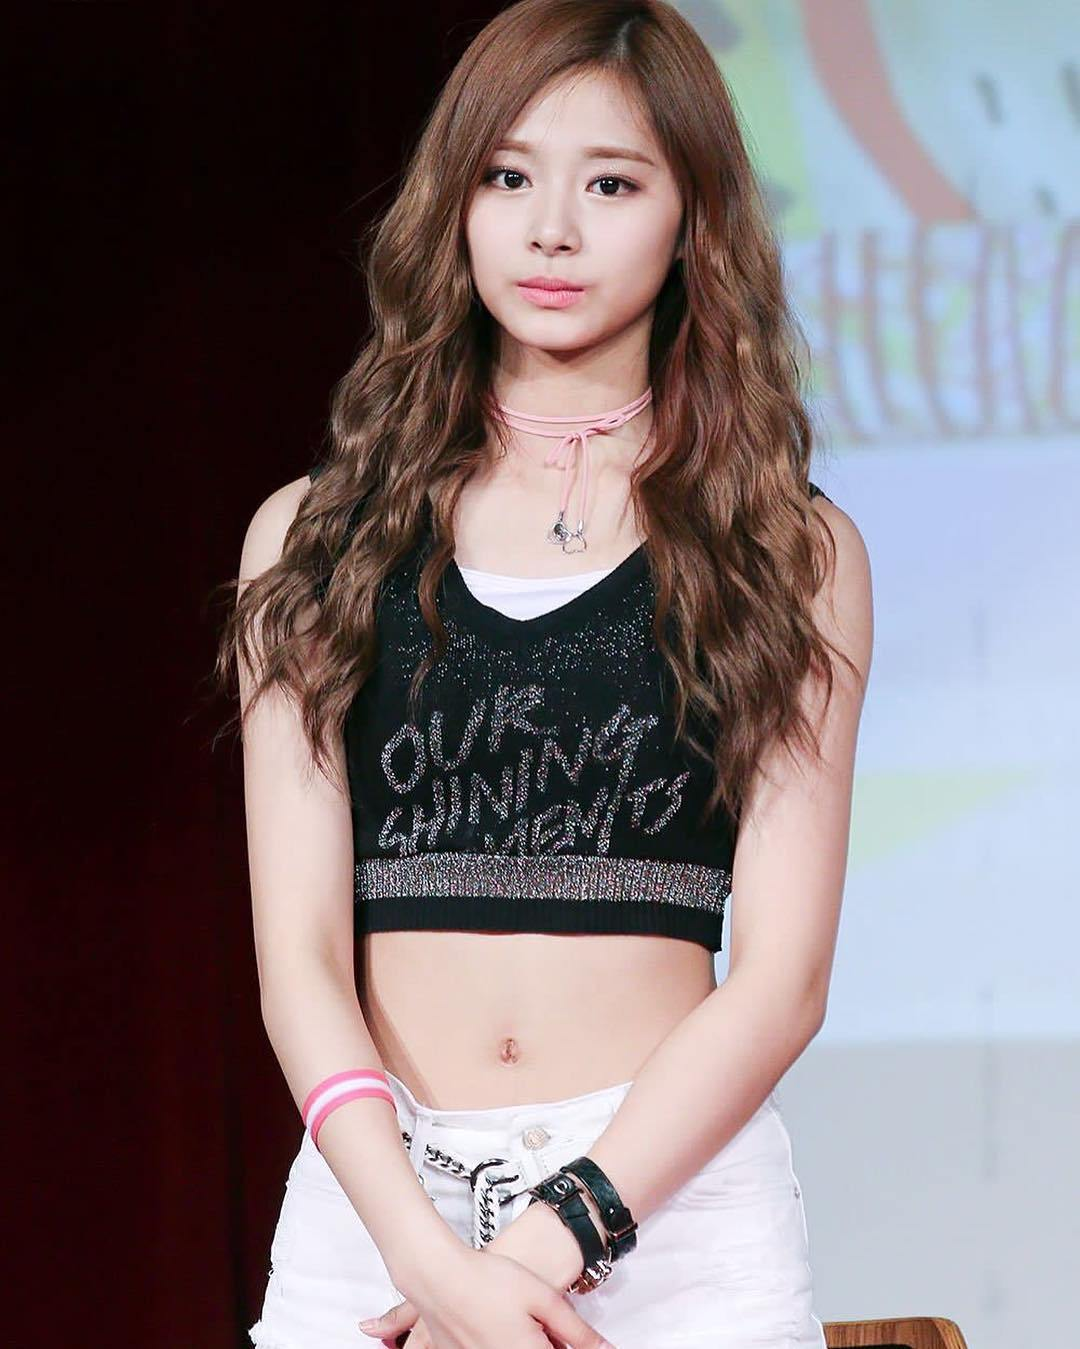 South Korean Singer Chou Tzu Yu HD Pictures and Wallpapers – HD IMAGES